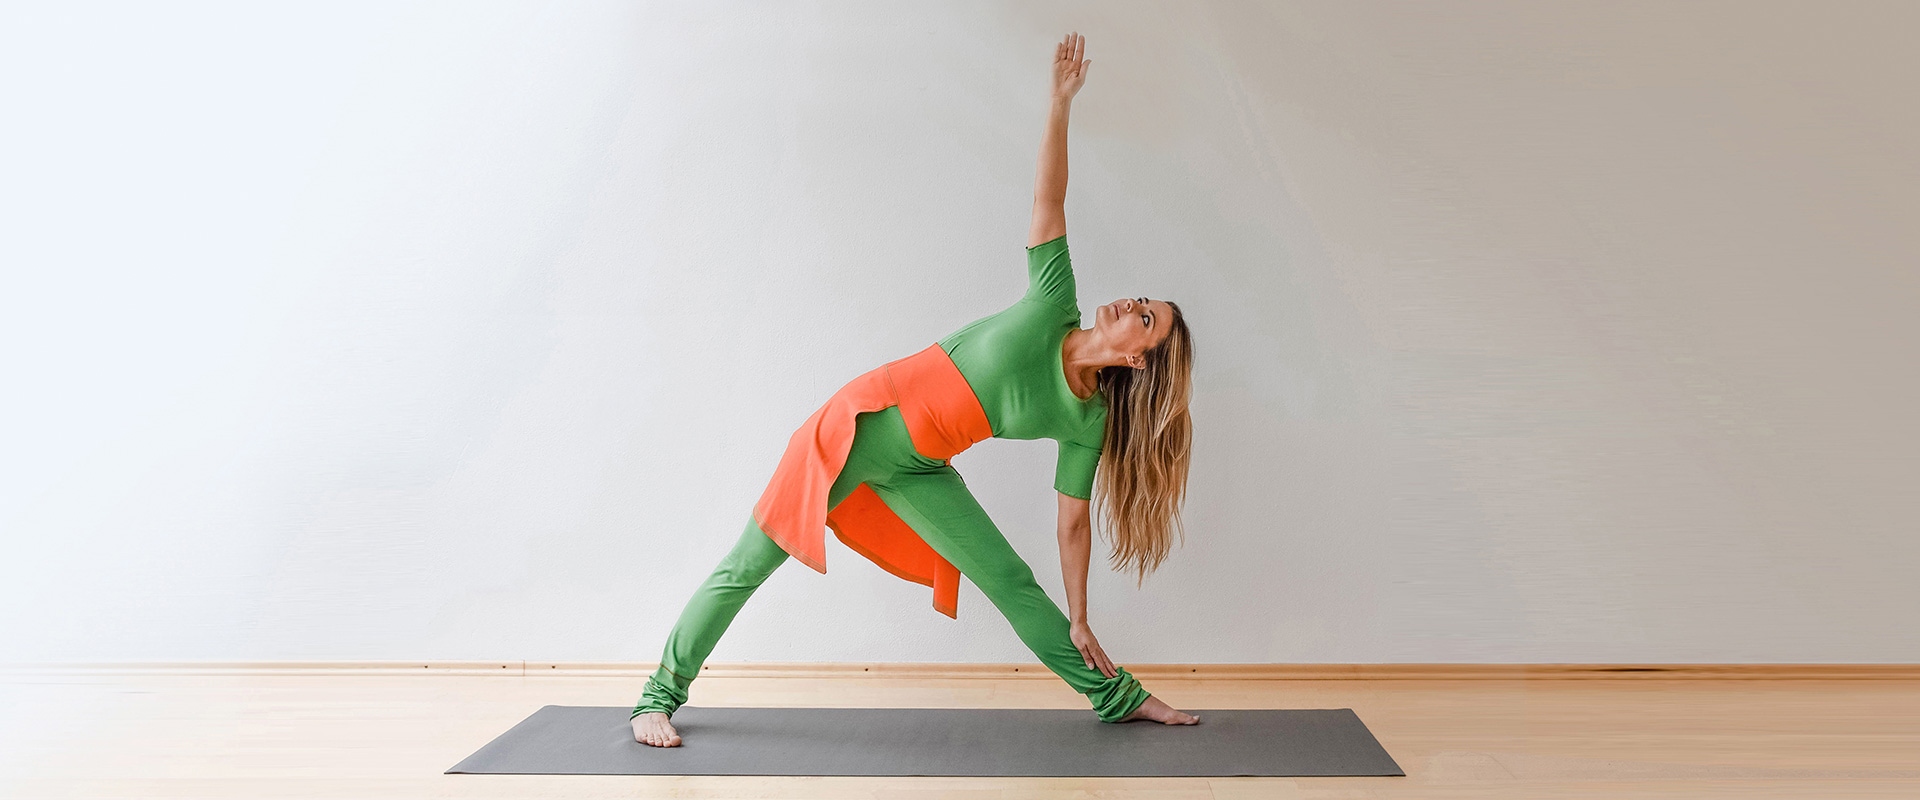 yogawear leggings yoga grün orange t-shirt kaufen